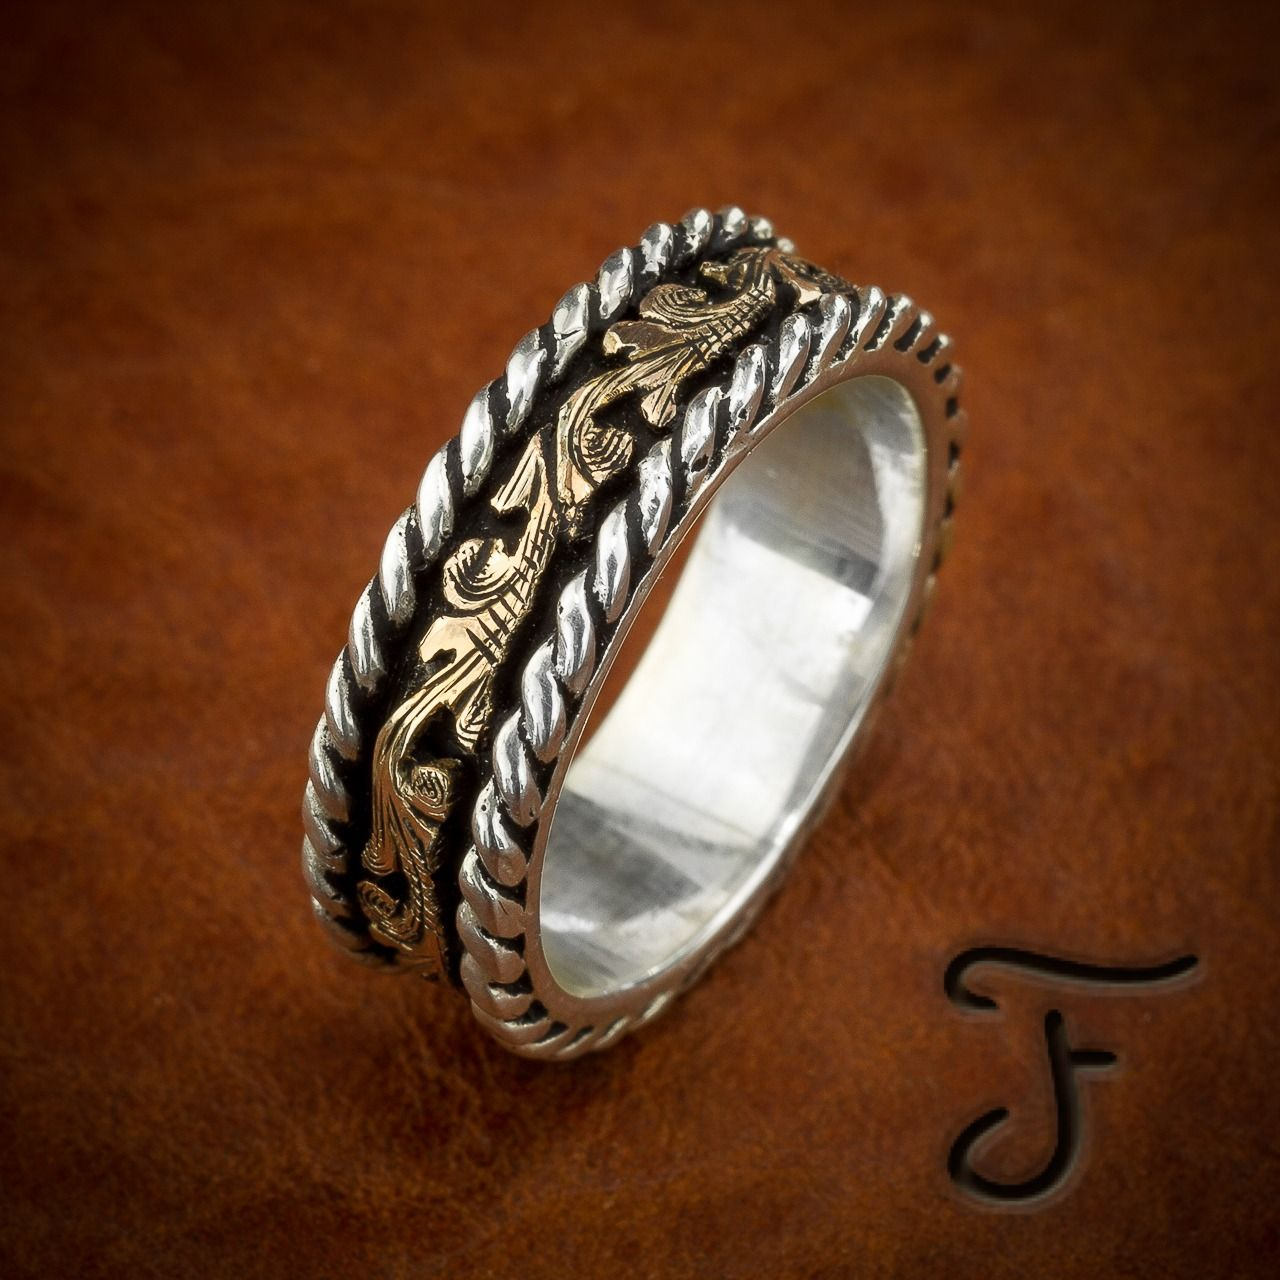 Our western rings are made with a flair that is uniquely